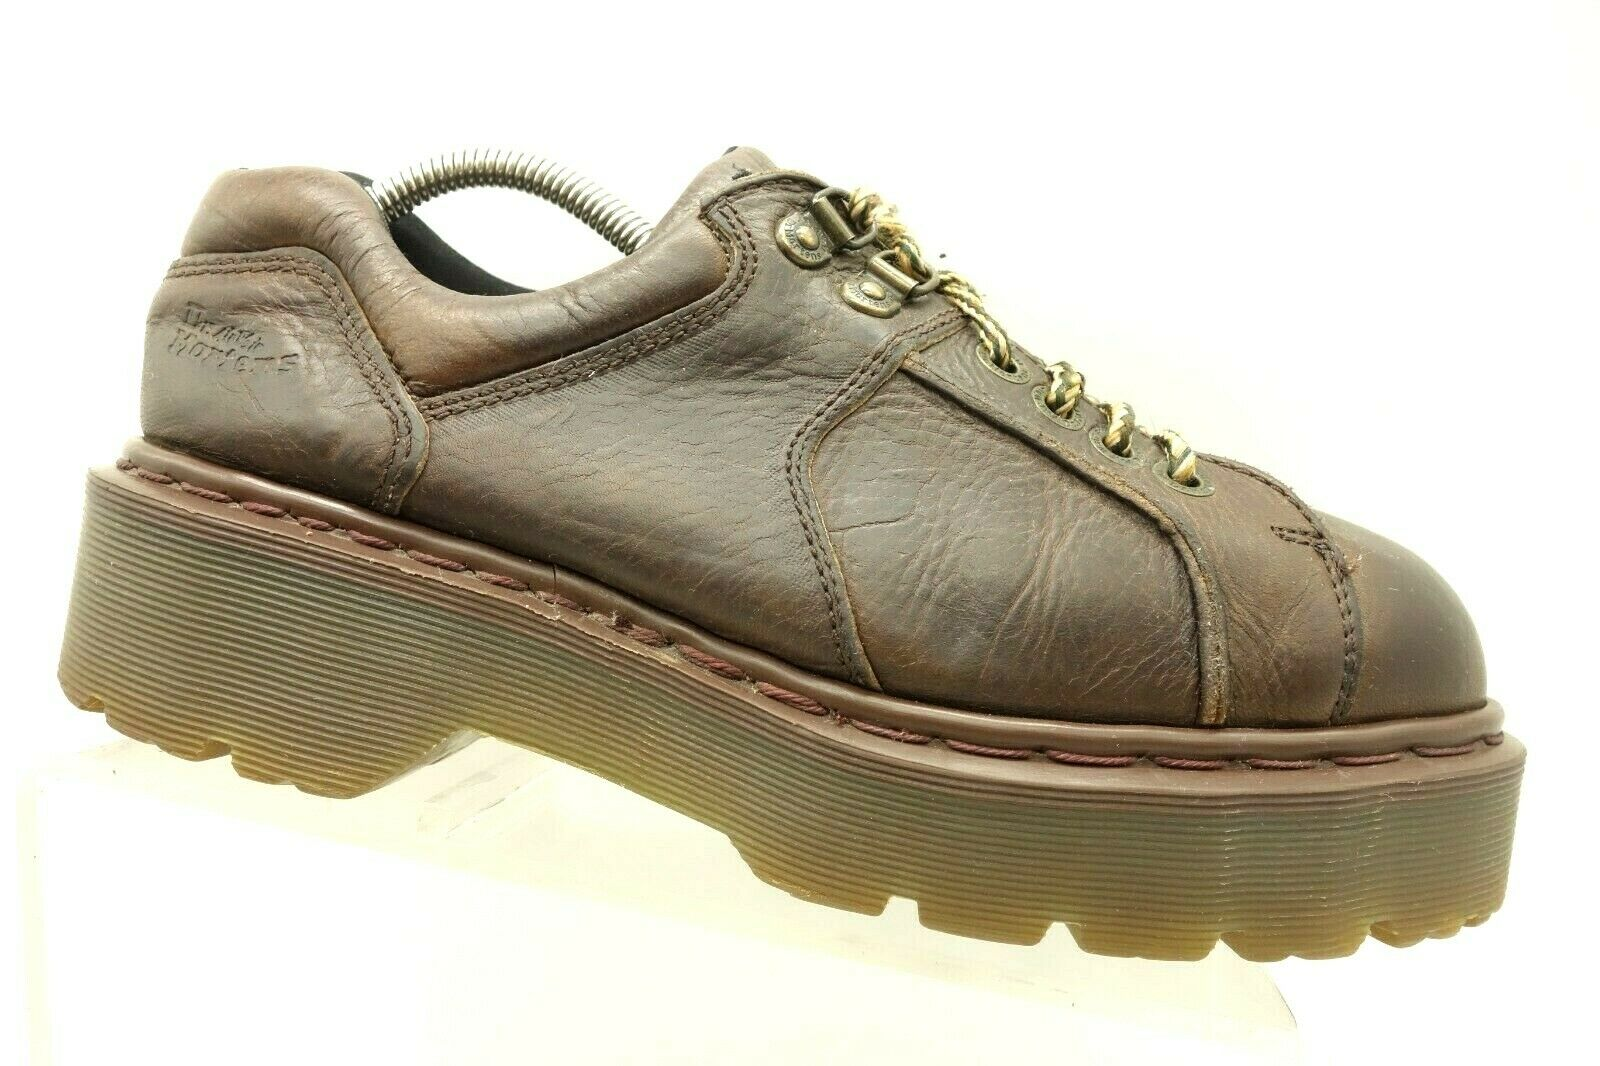 Dr Martens England Brown Leather Casual Oxfords shoes shoes shoes Women's 8 UK   US 10 753bea